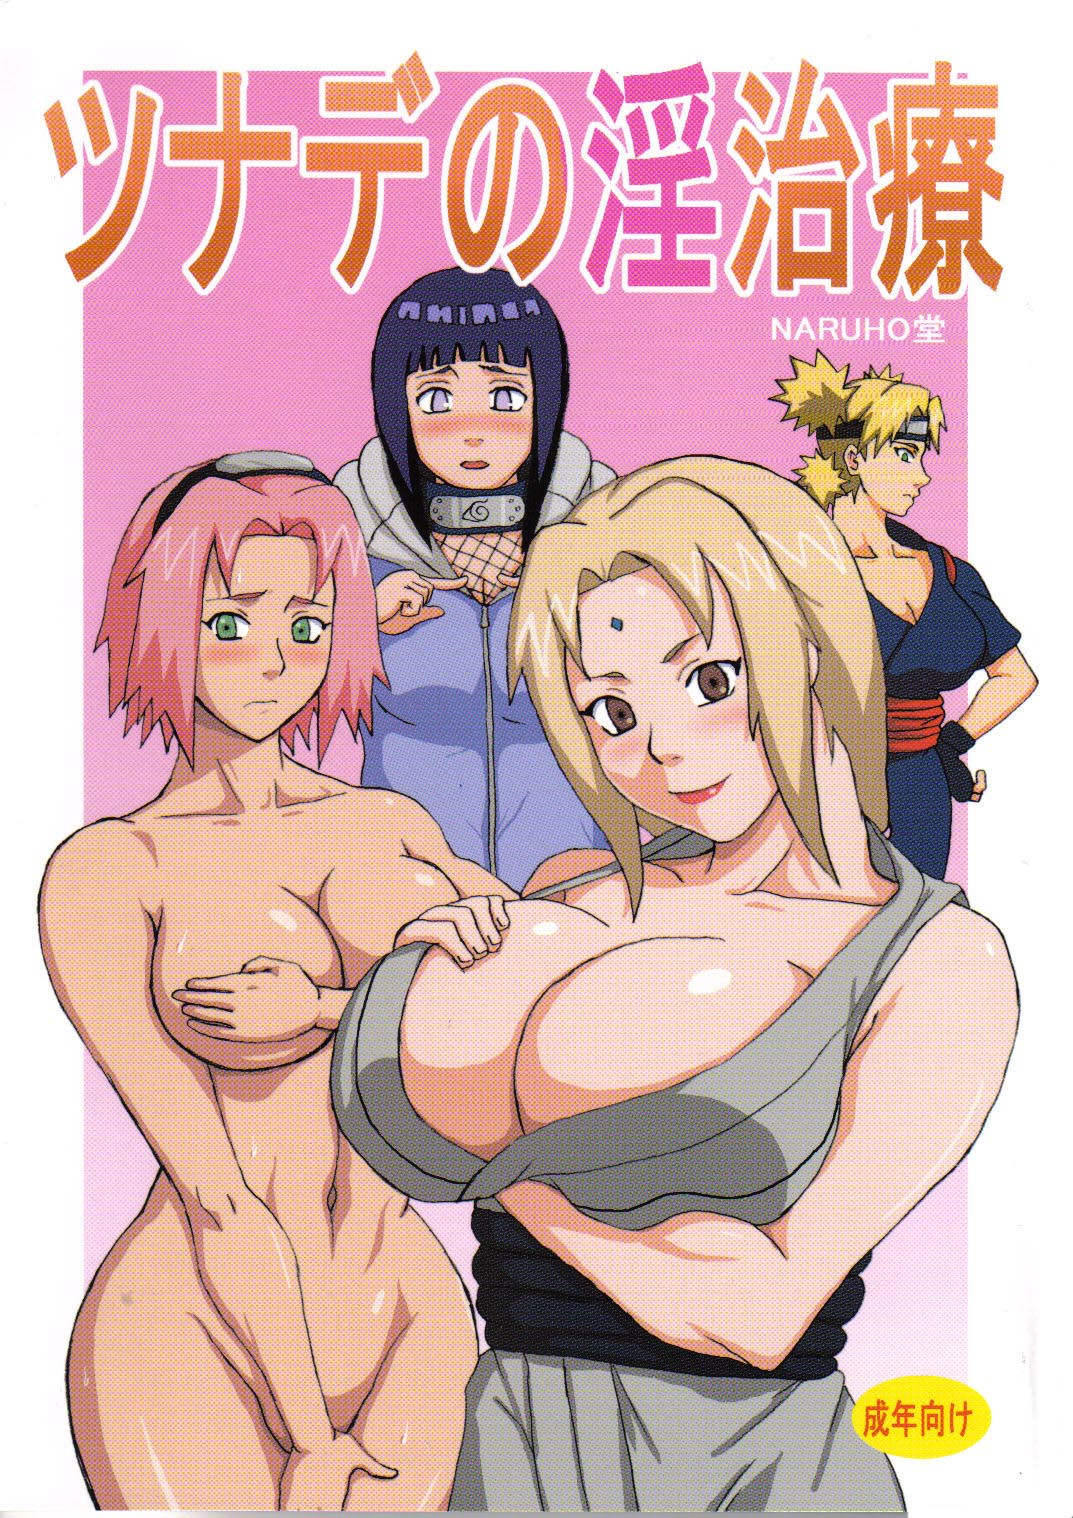 Naruto-Tsunade's Sexual Therapy image 1